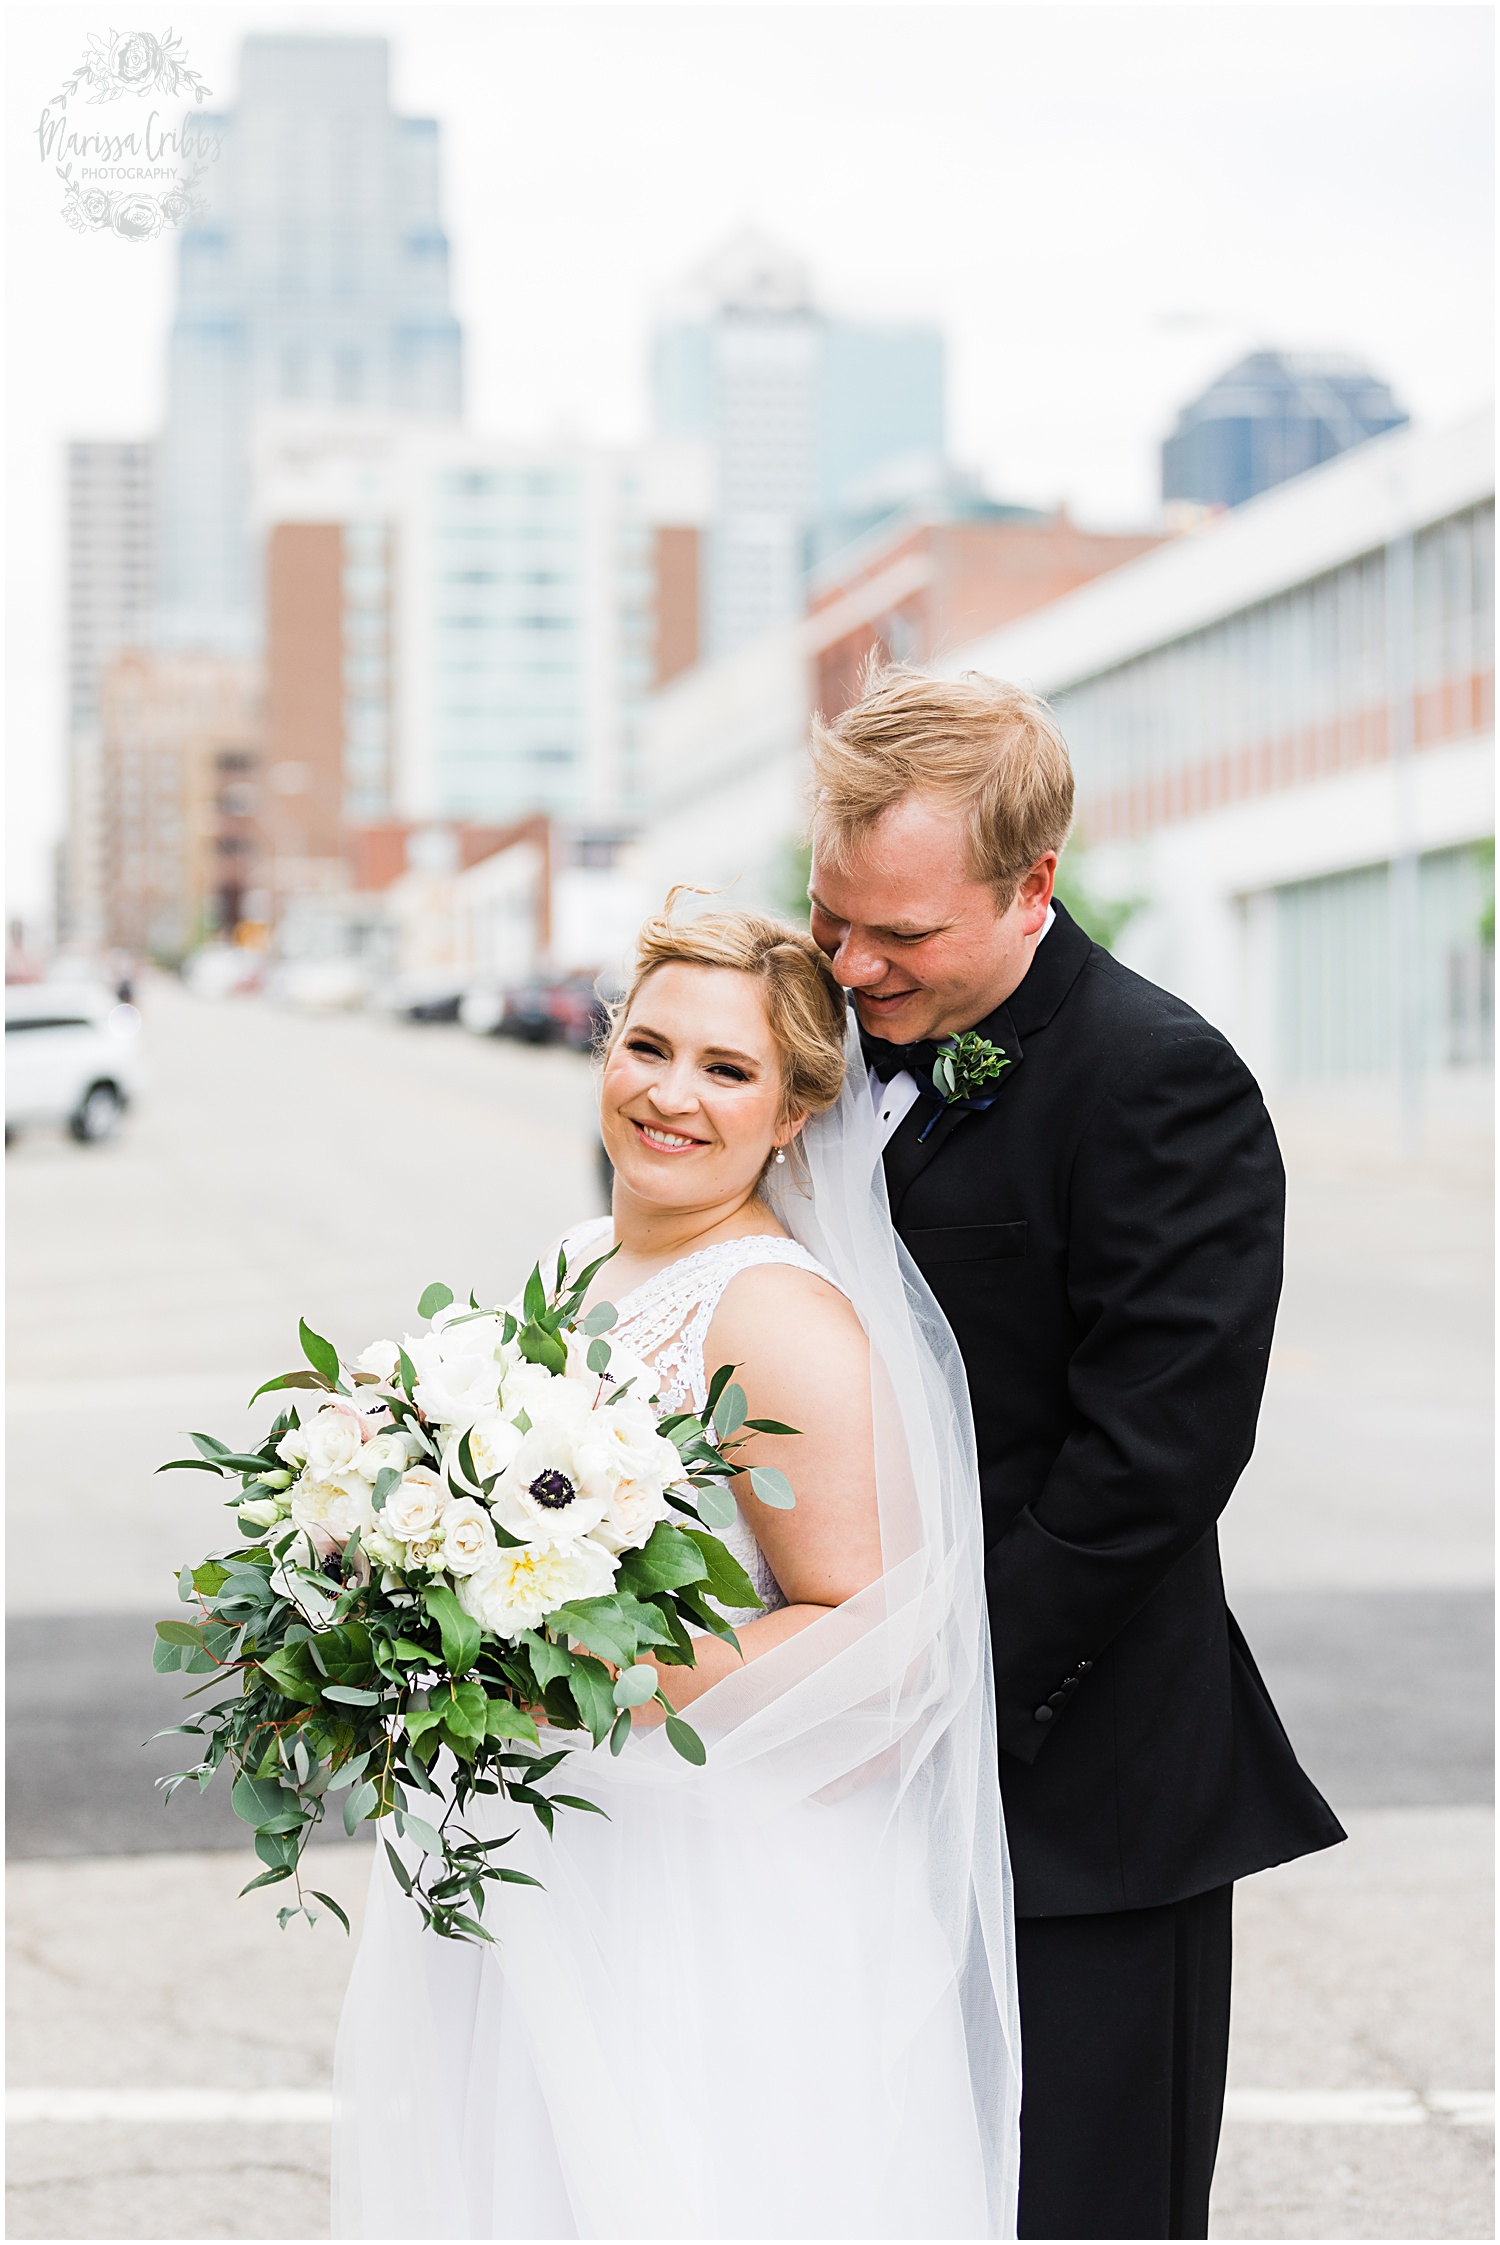 RACHEL & SCOTT MARRIED | MARISSA CRIBBS PHOTOGRAPHY_7674.jpg